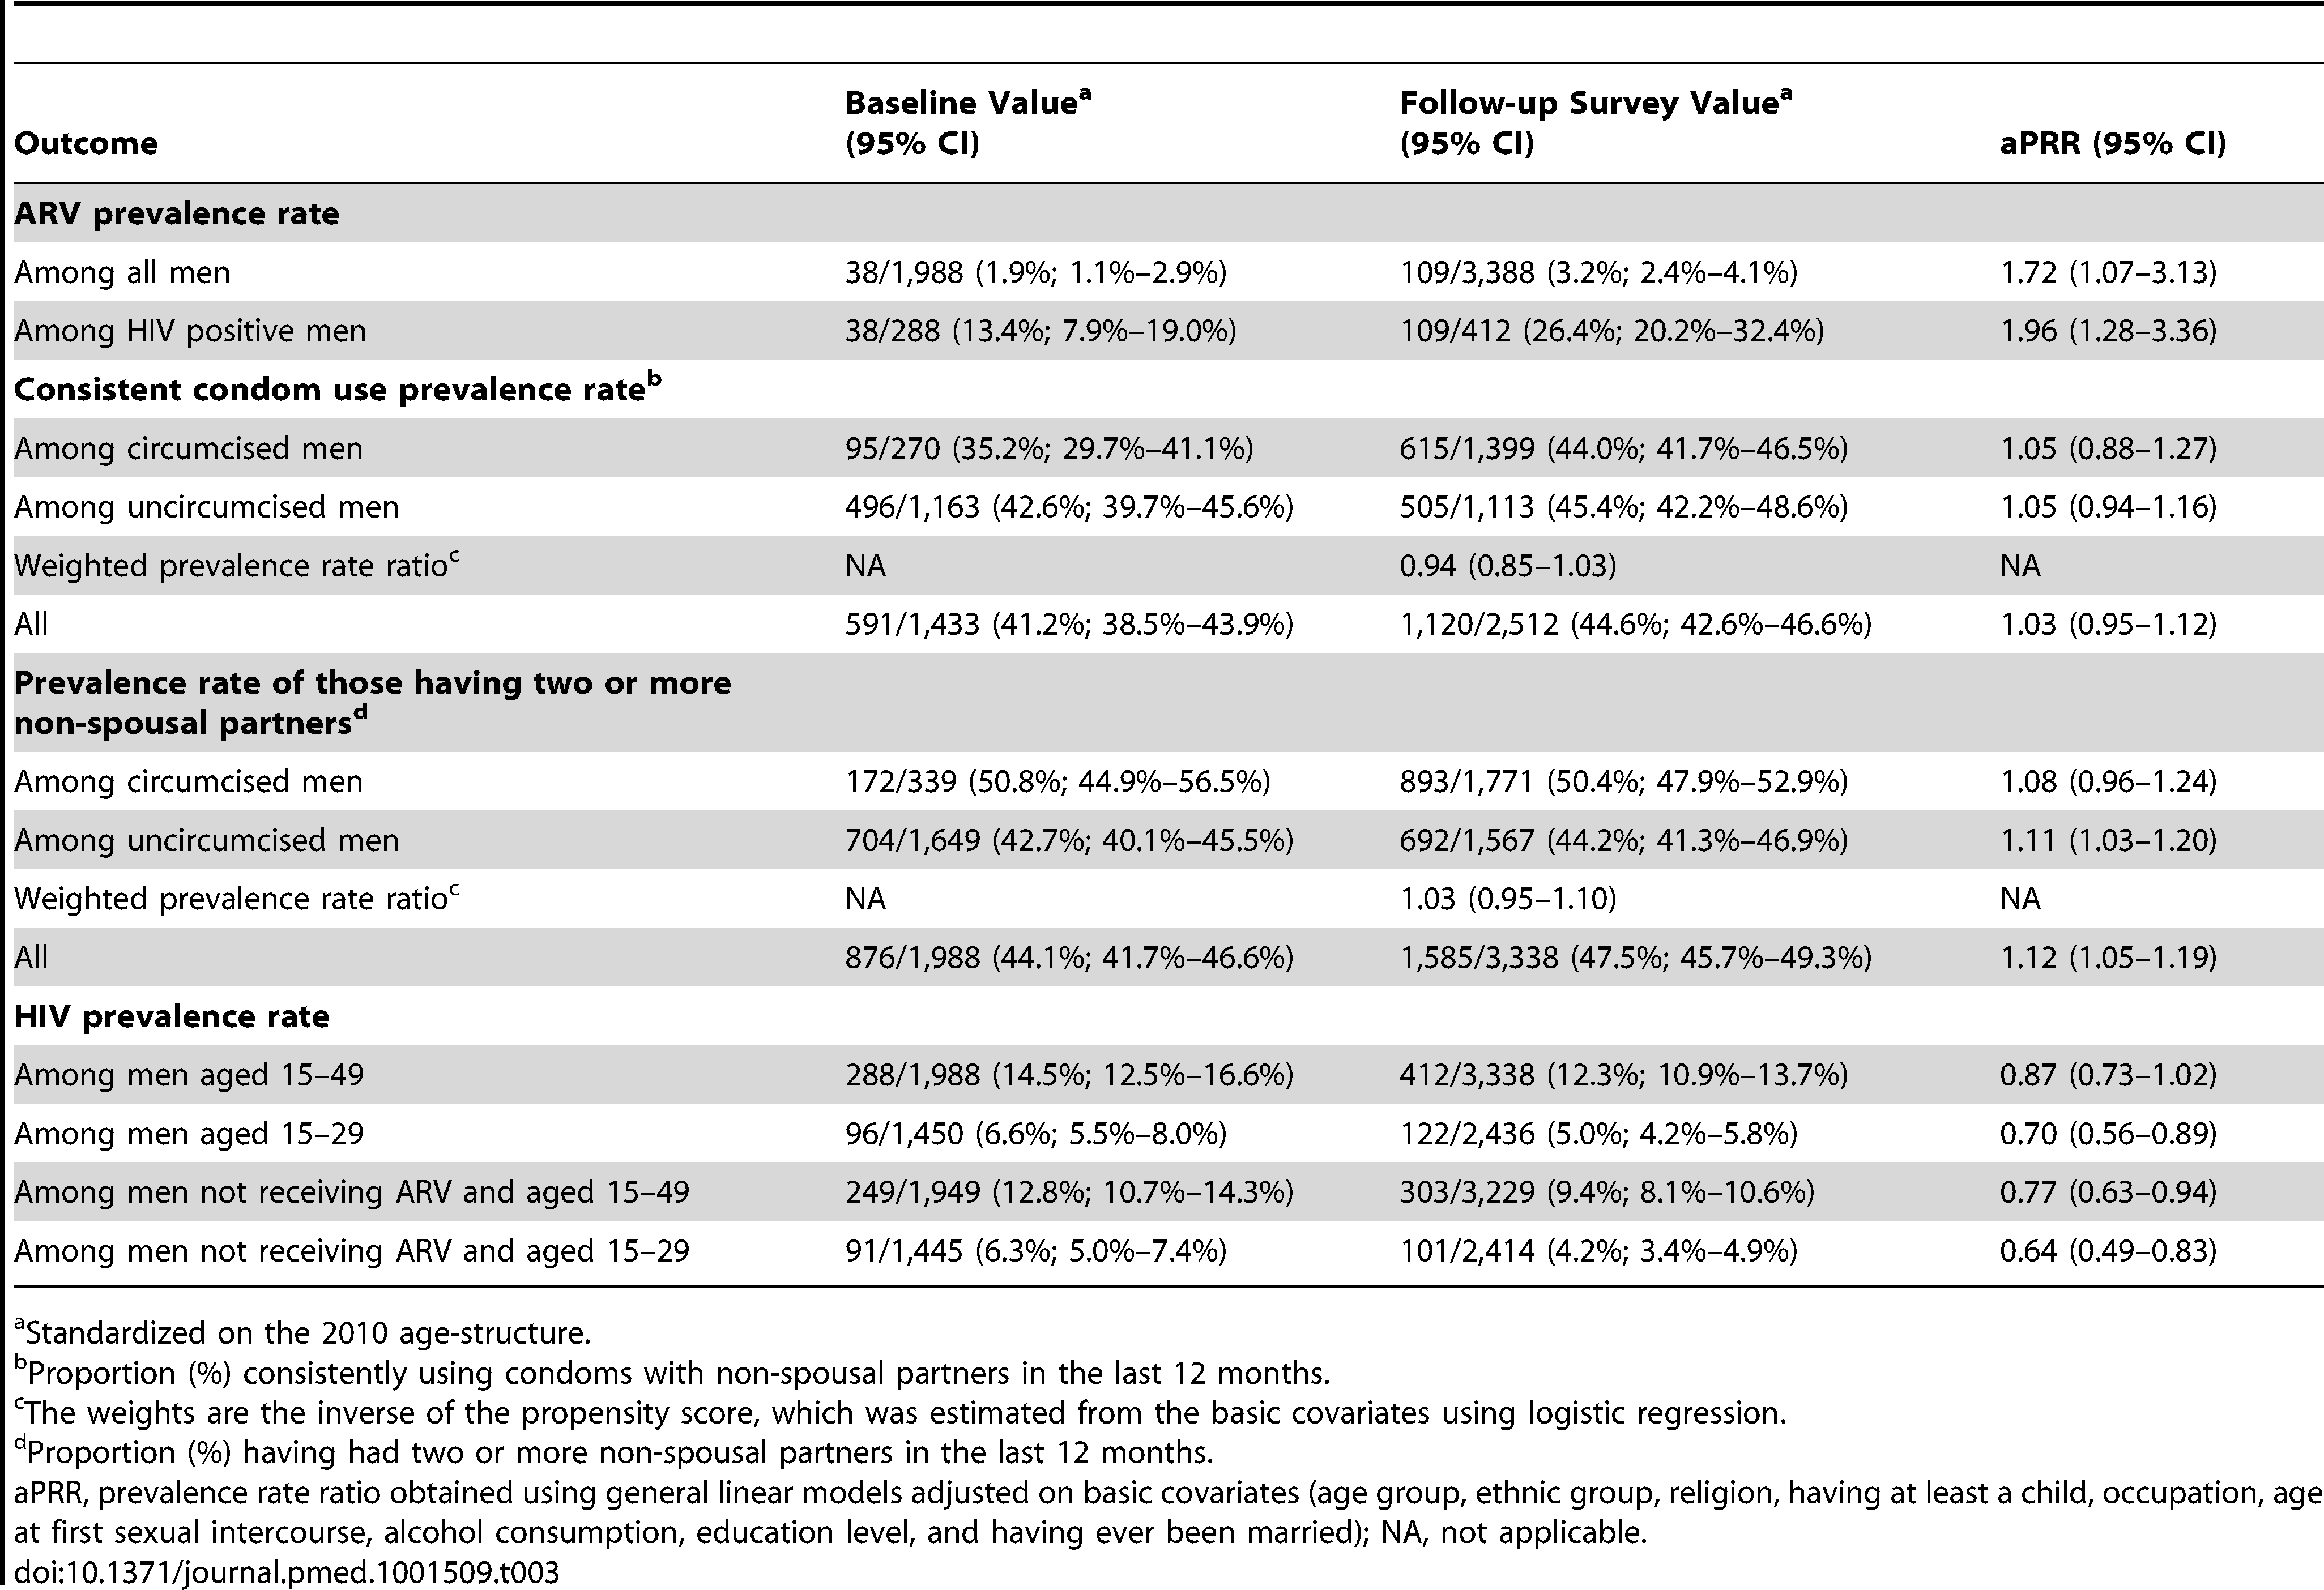 Variations among men of key outcomes between the baseline and the follow-up survey, and by circumcision status in the follow-up survey.